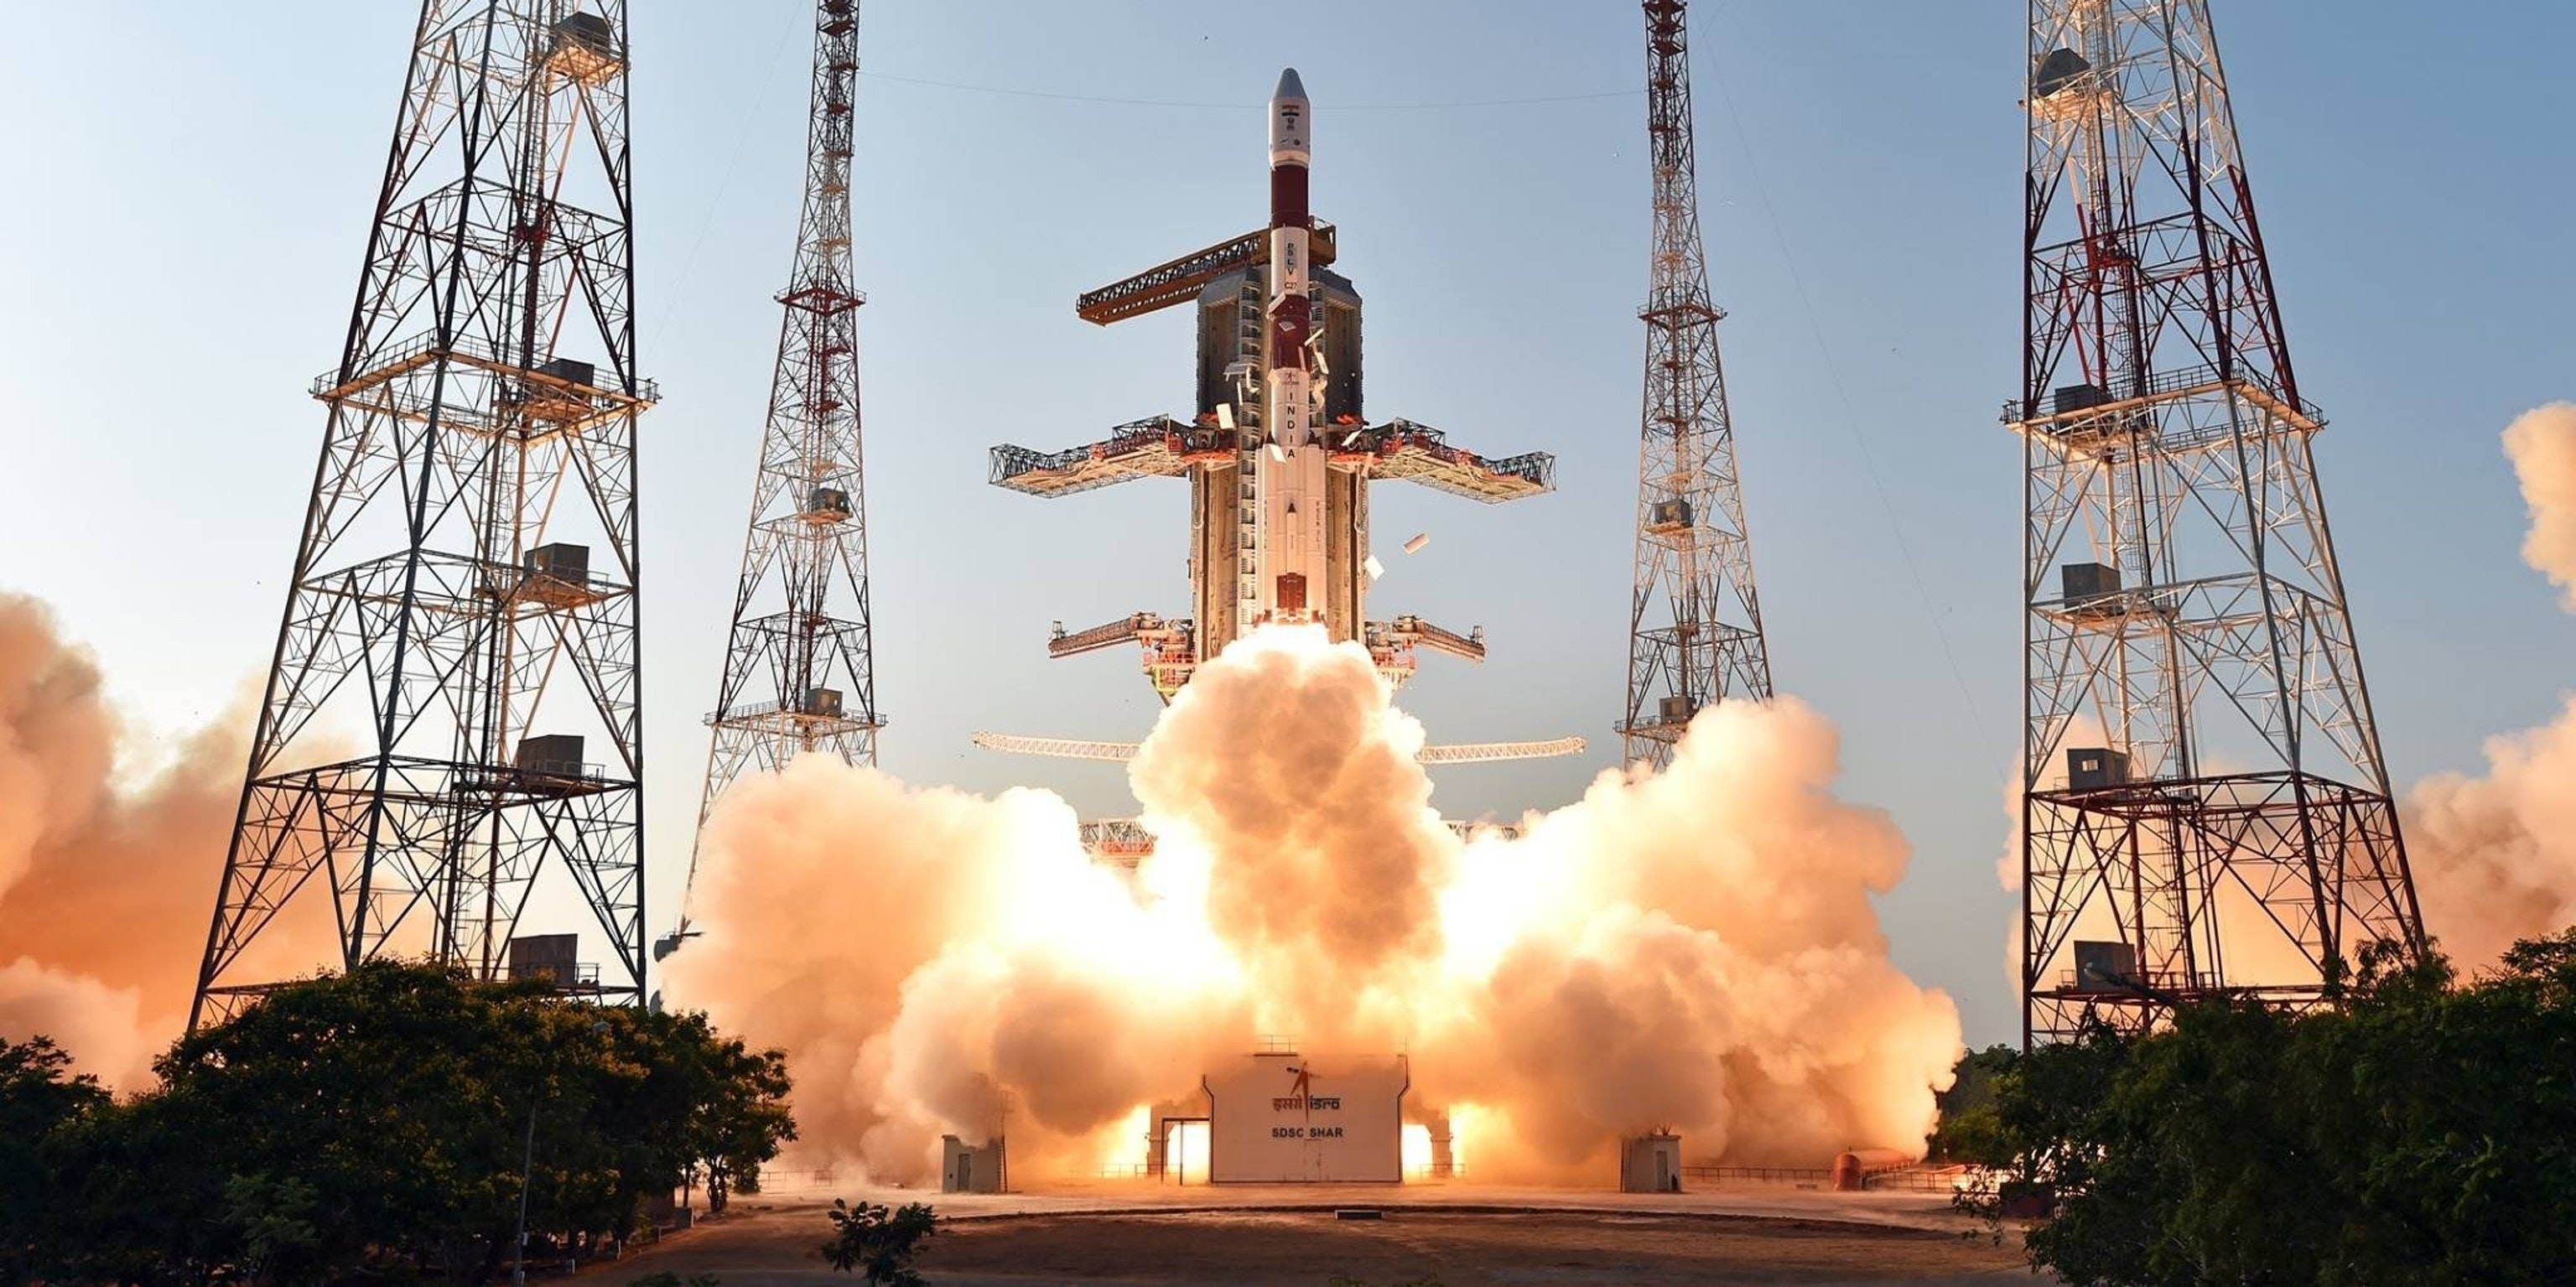 Team Indus will hitch a ride to the Moon on top of an Indian rocket.